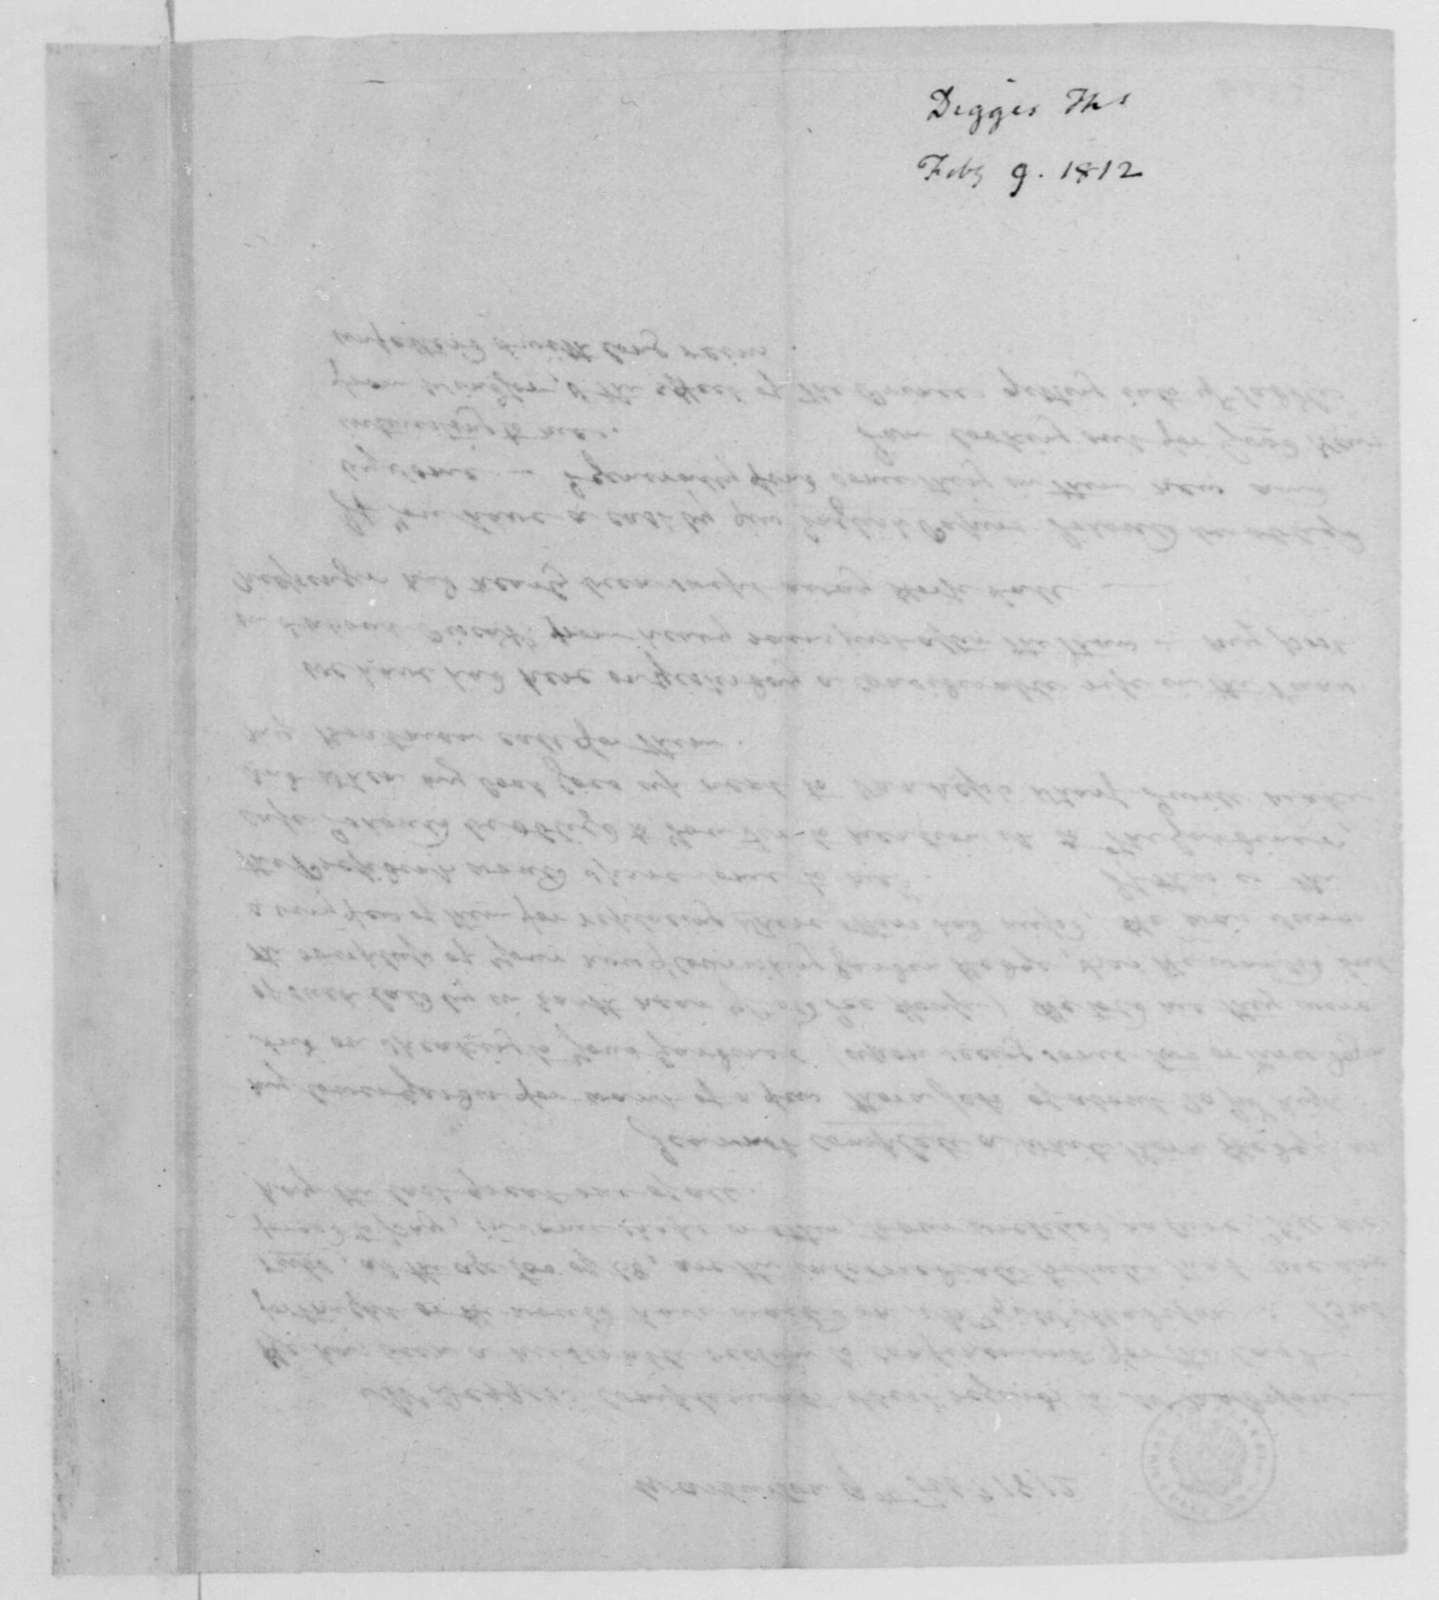 Thomas Digges to James Madison, February 9, 1812.